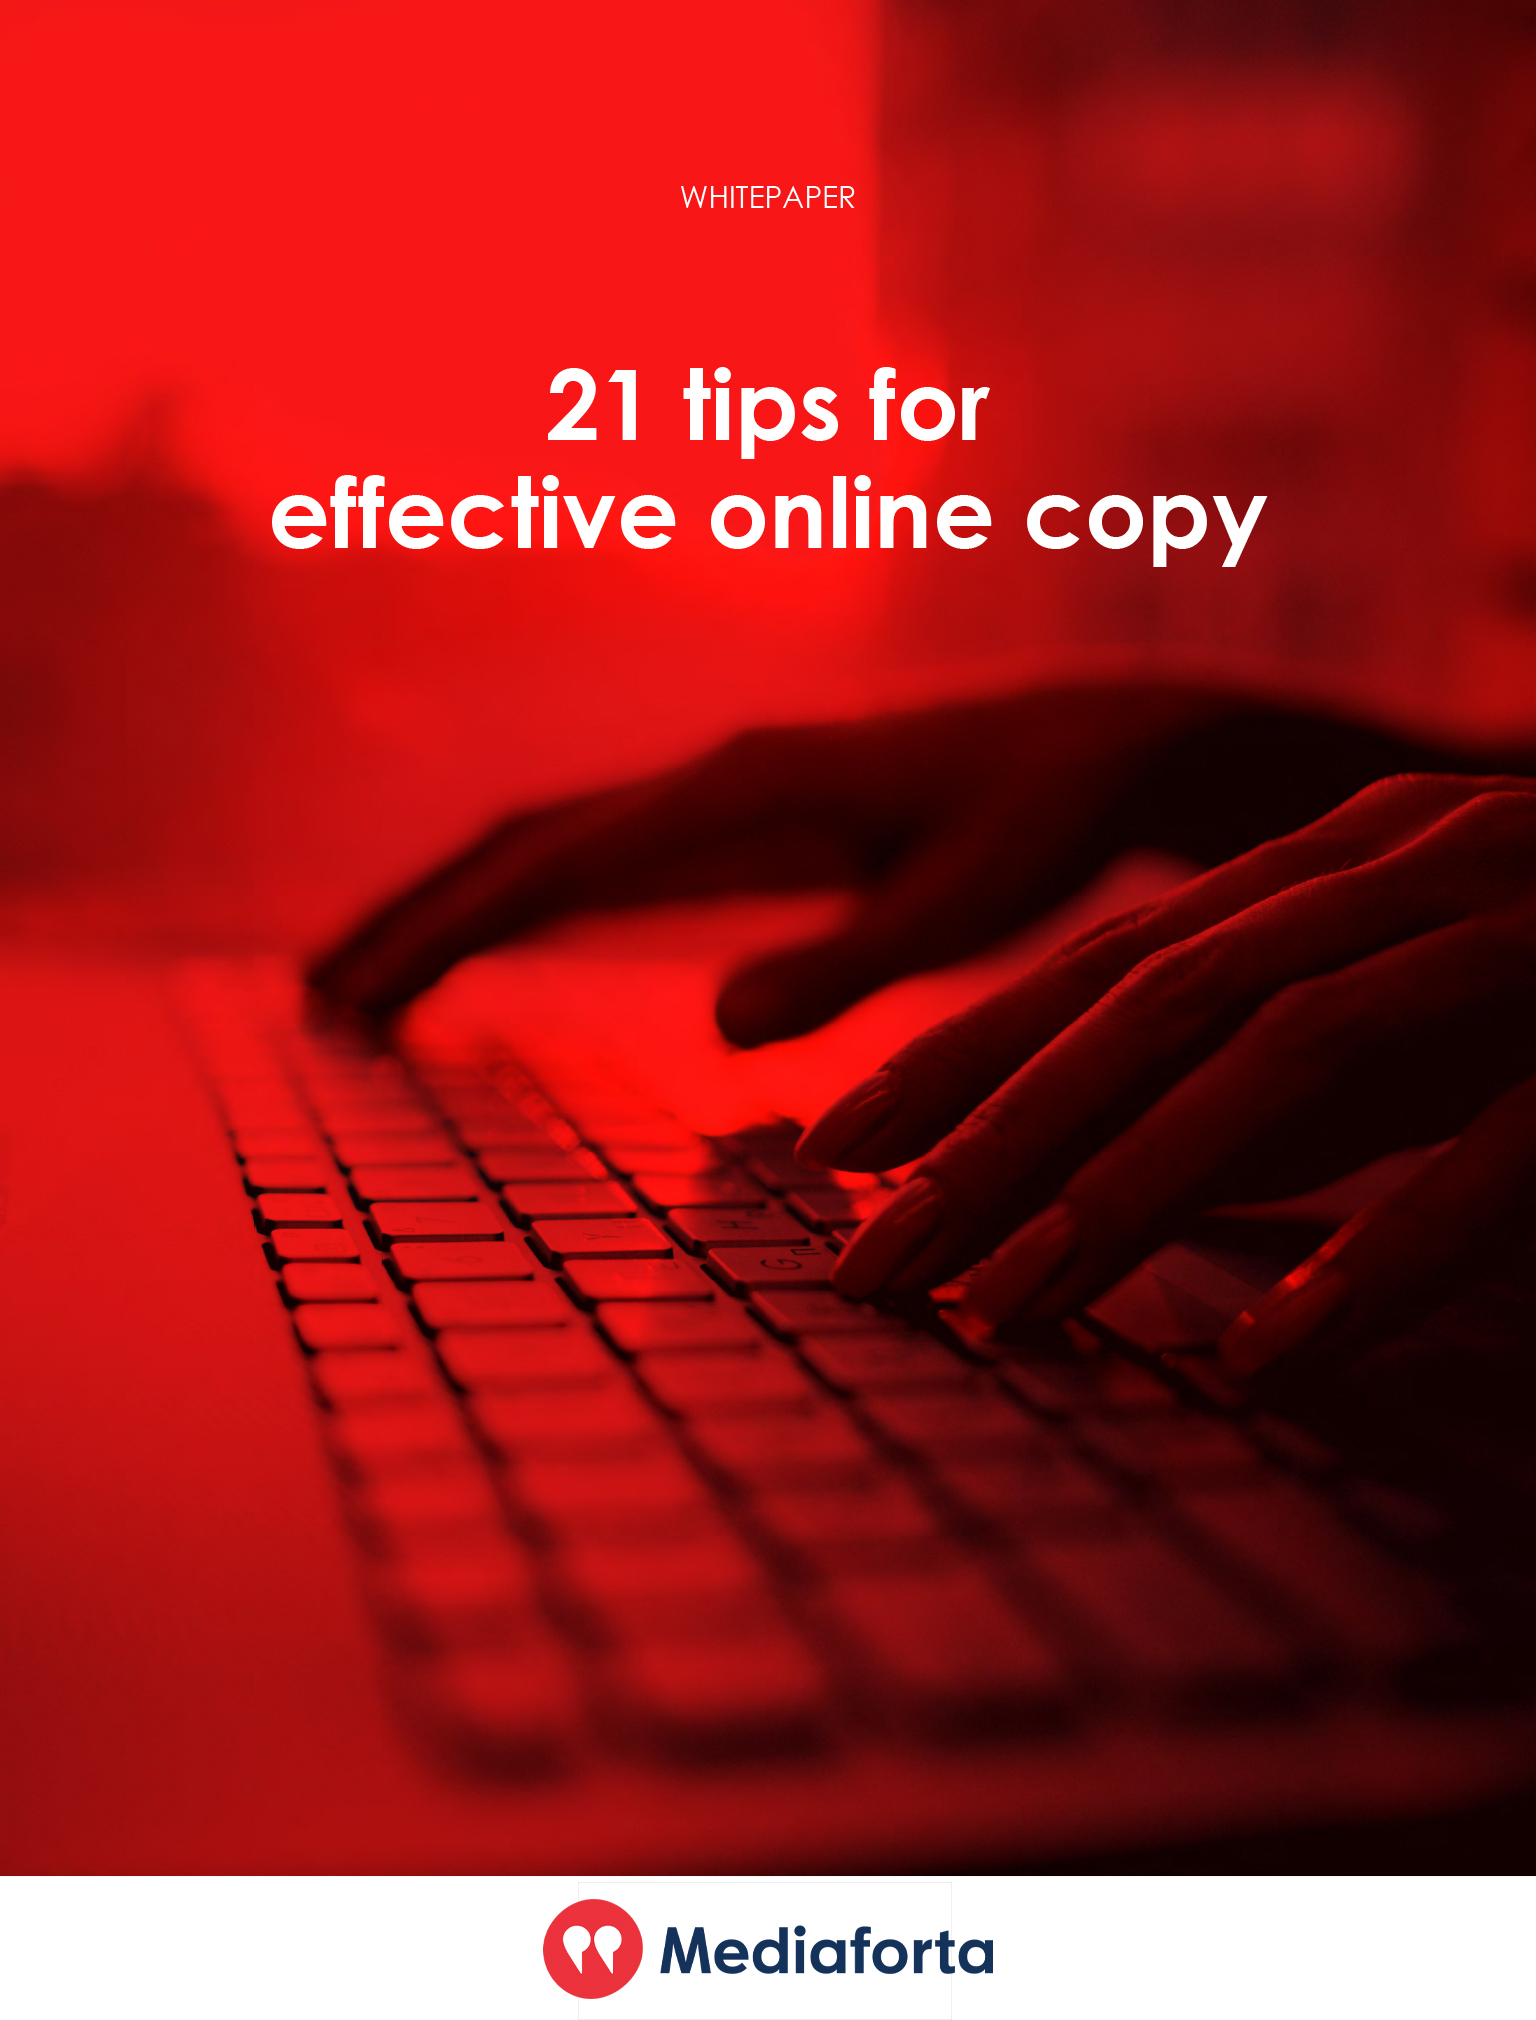 21 tips for online copy whitepaper nieuw logo